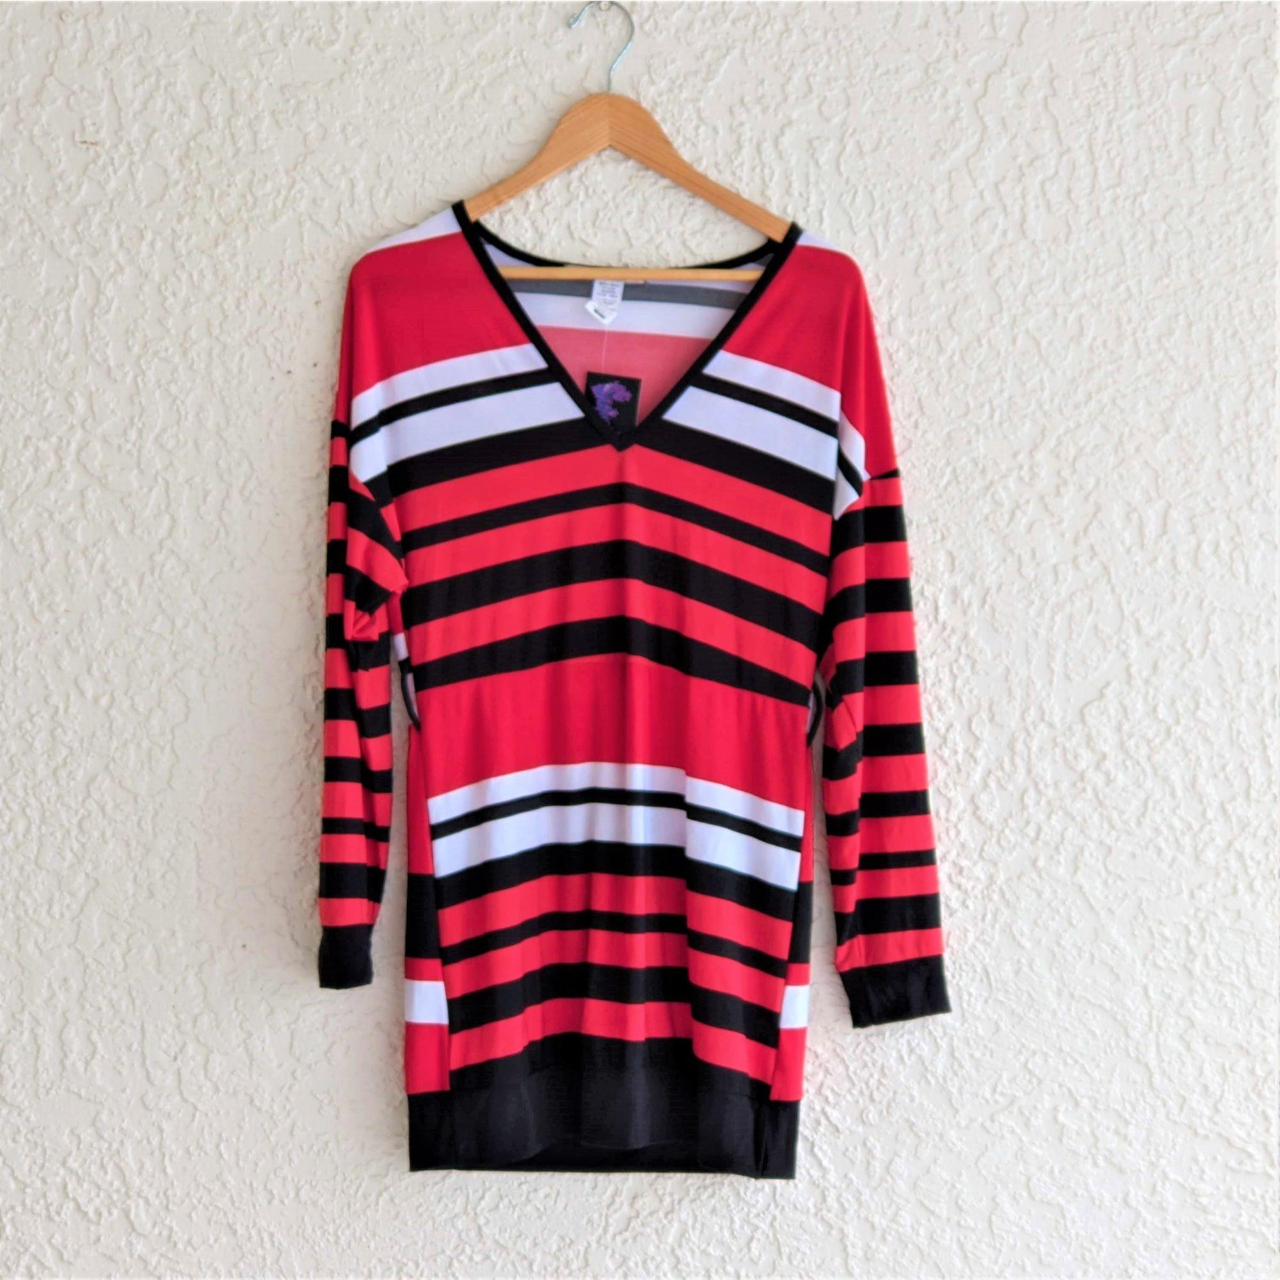 Product Image 1 - Striped Banded Tunic or Mini